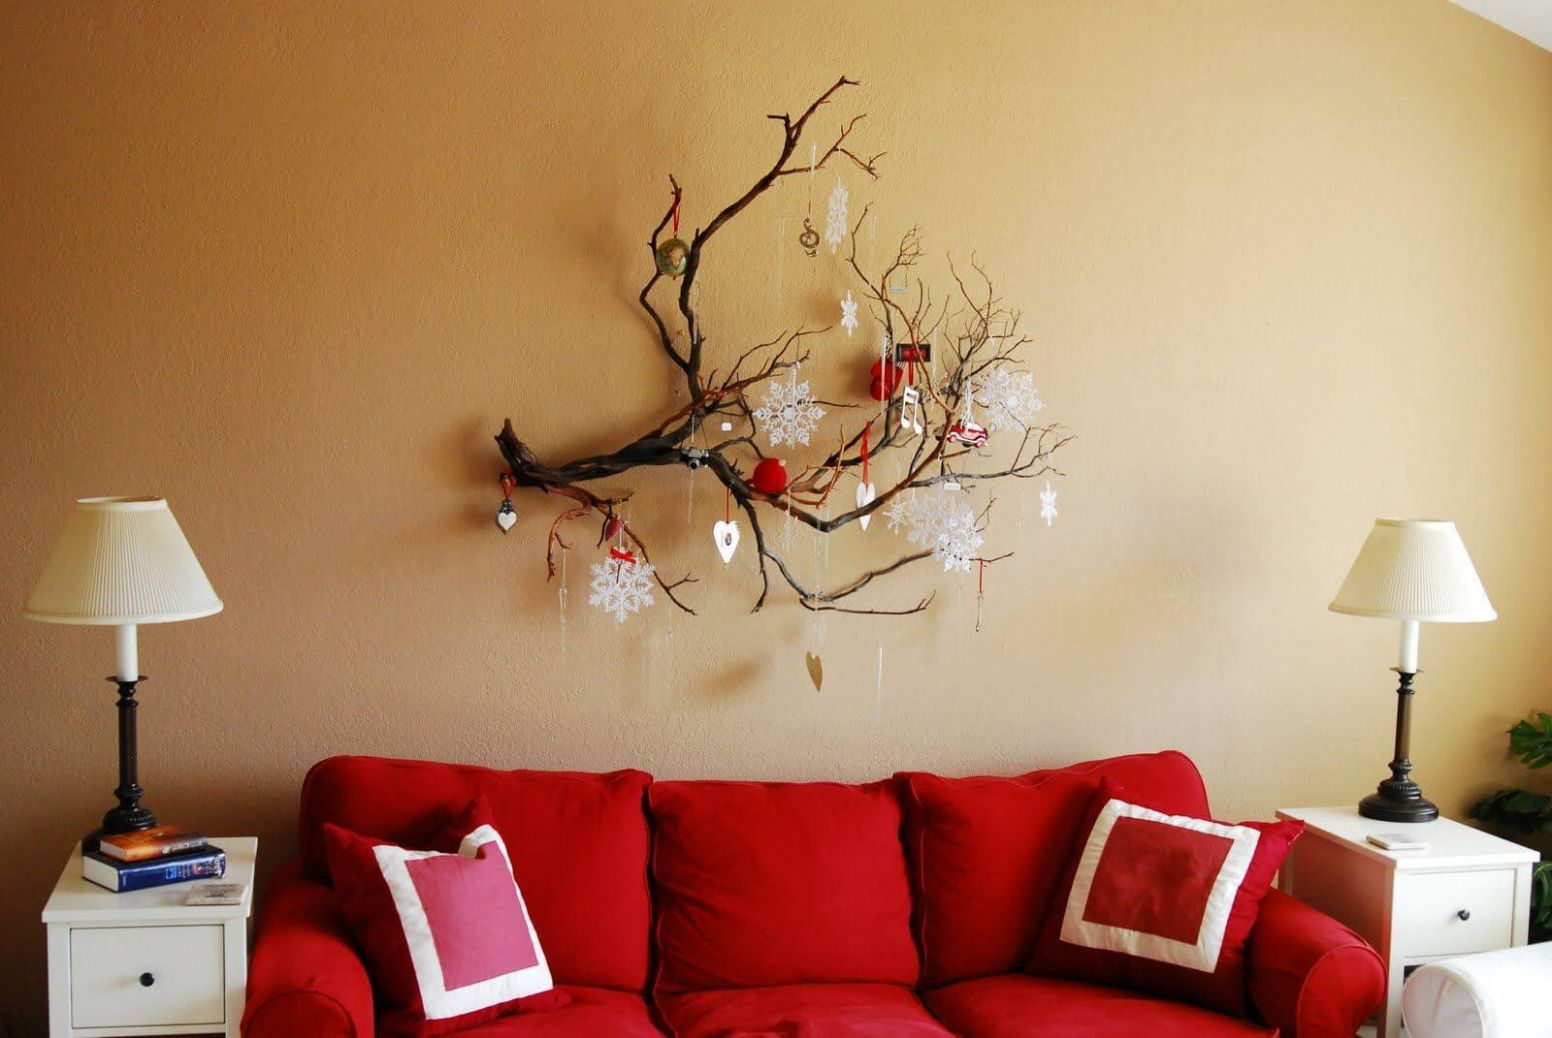 8 Best Christmas Wall Decor Ideas and Designs for 8